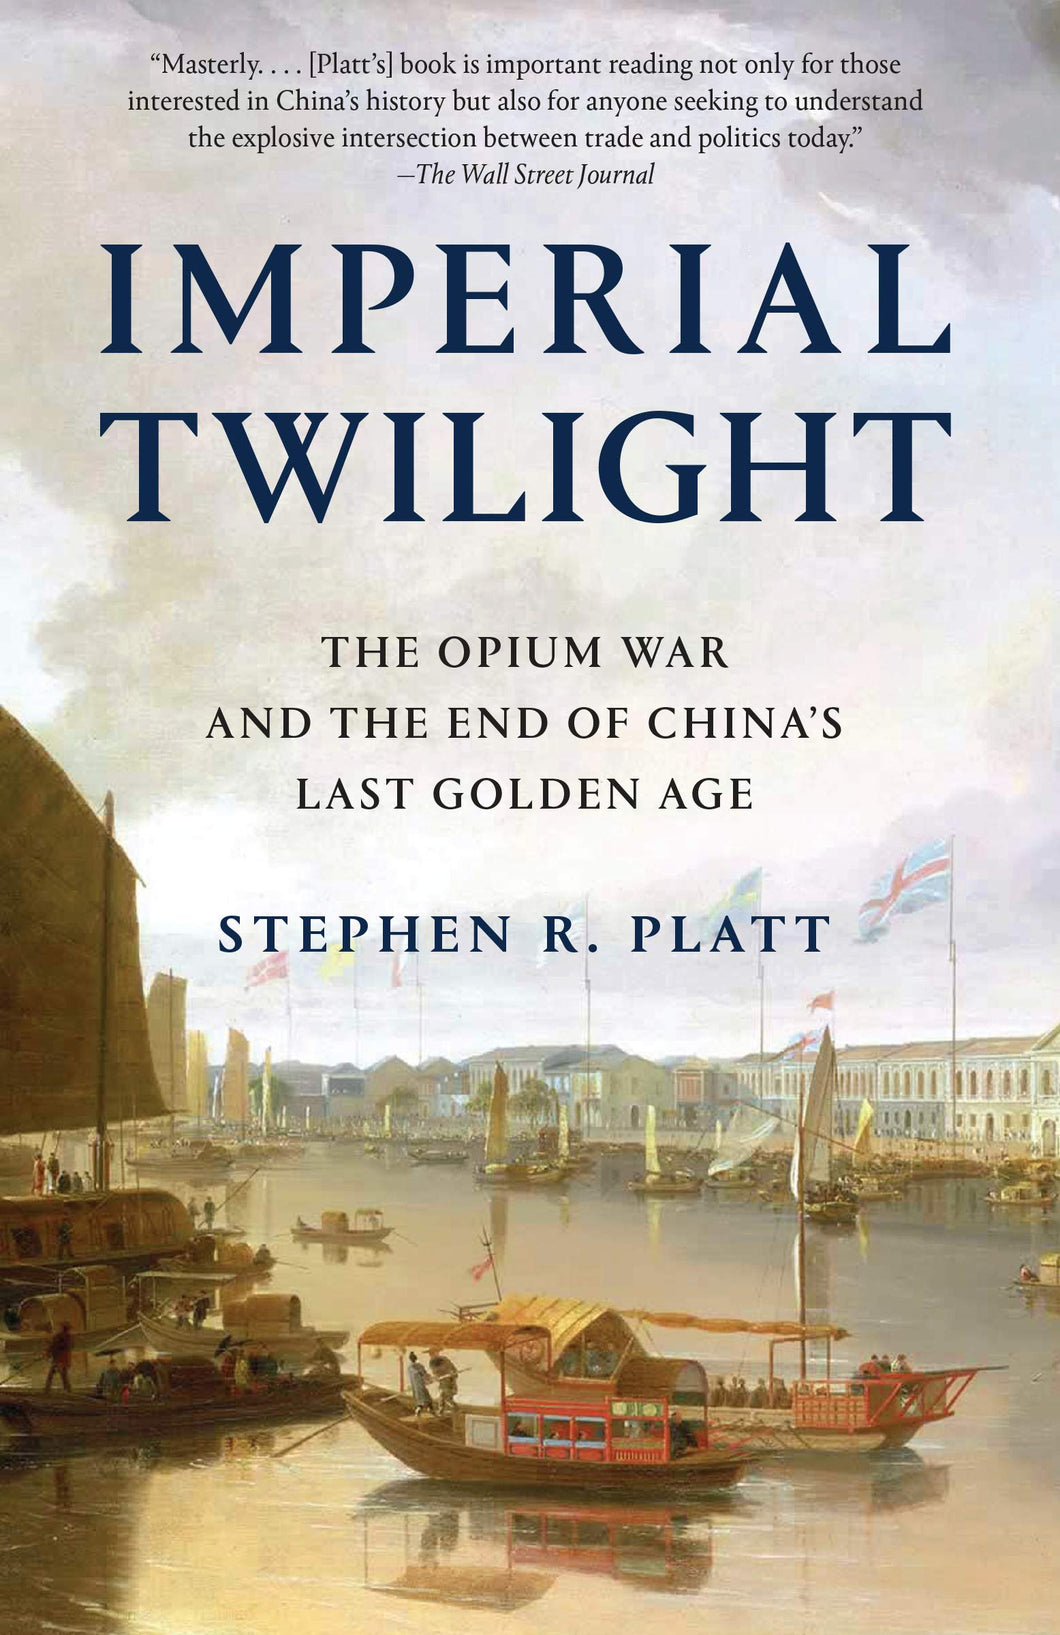 Imperial Twilight by Stephen R. Platt